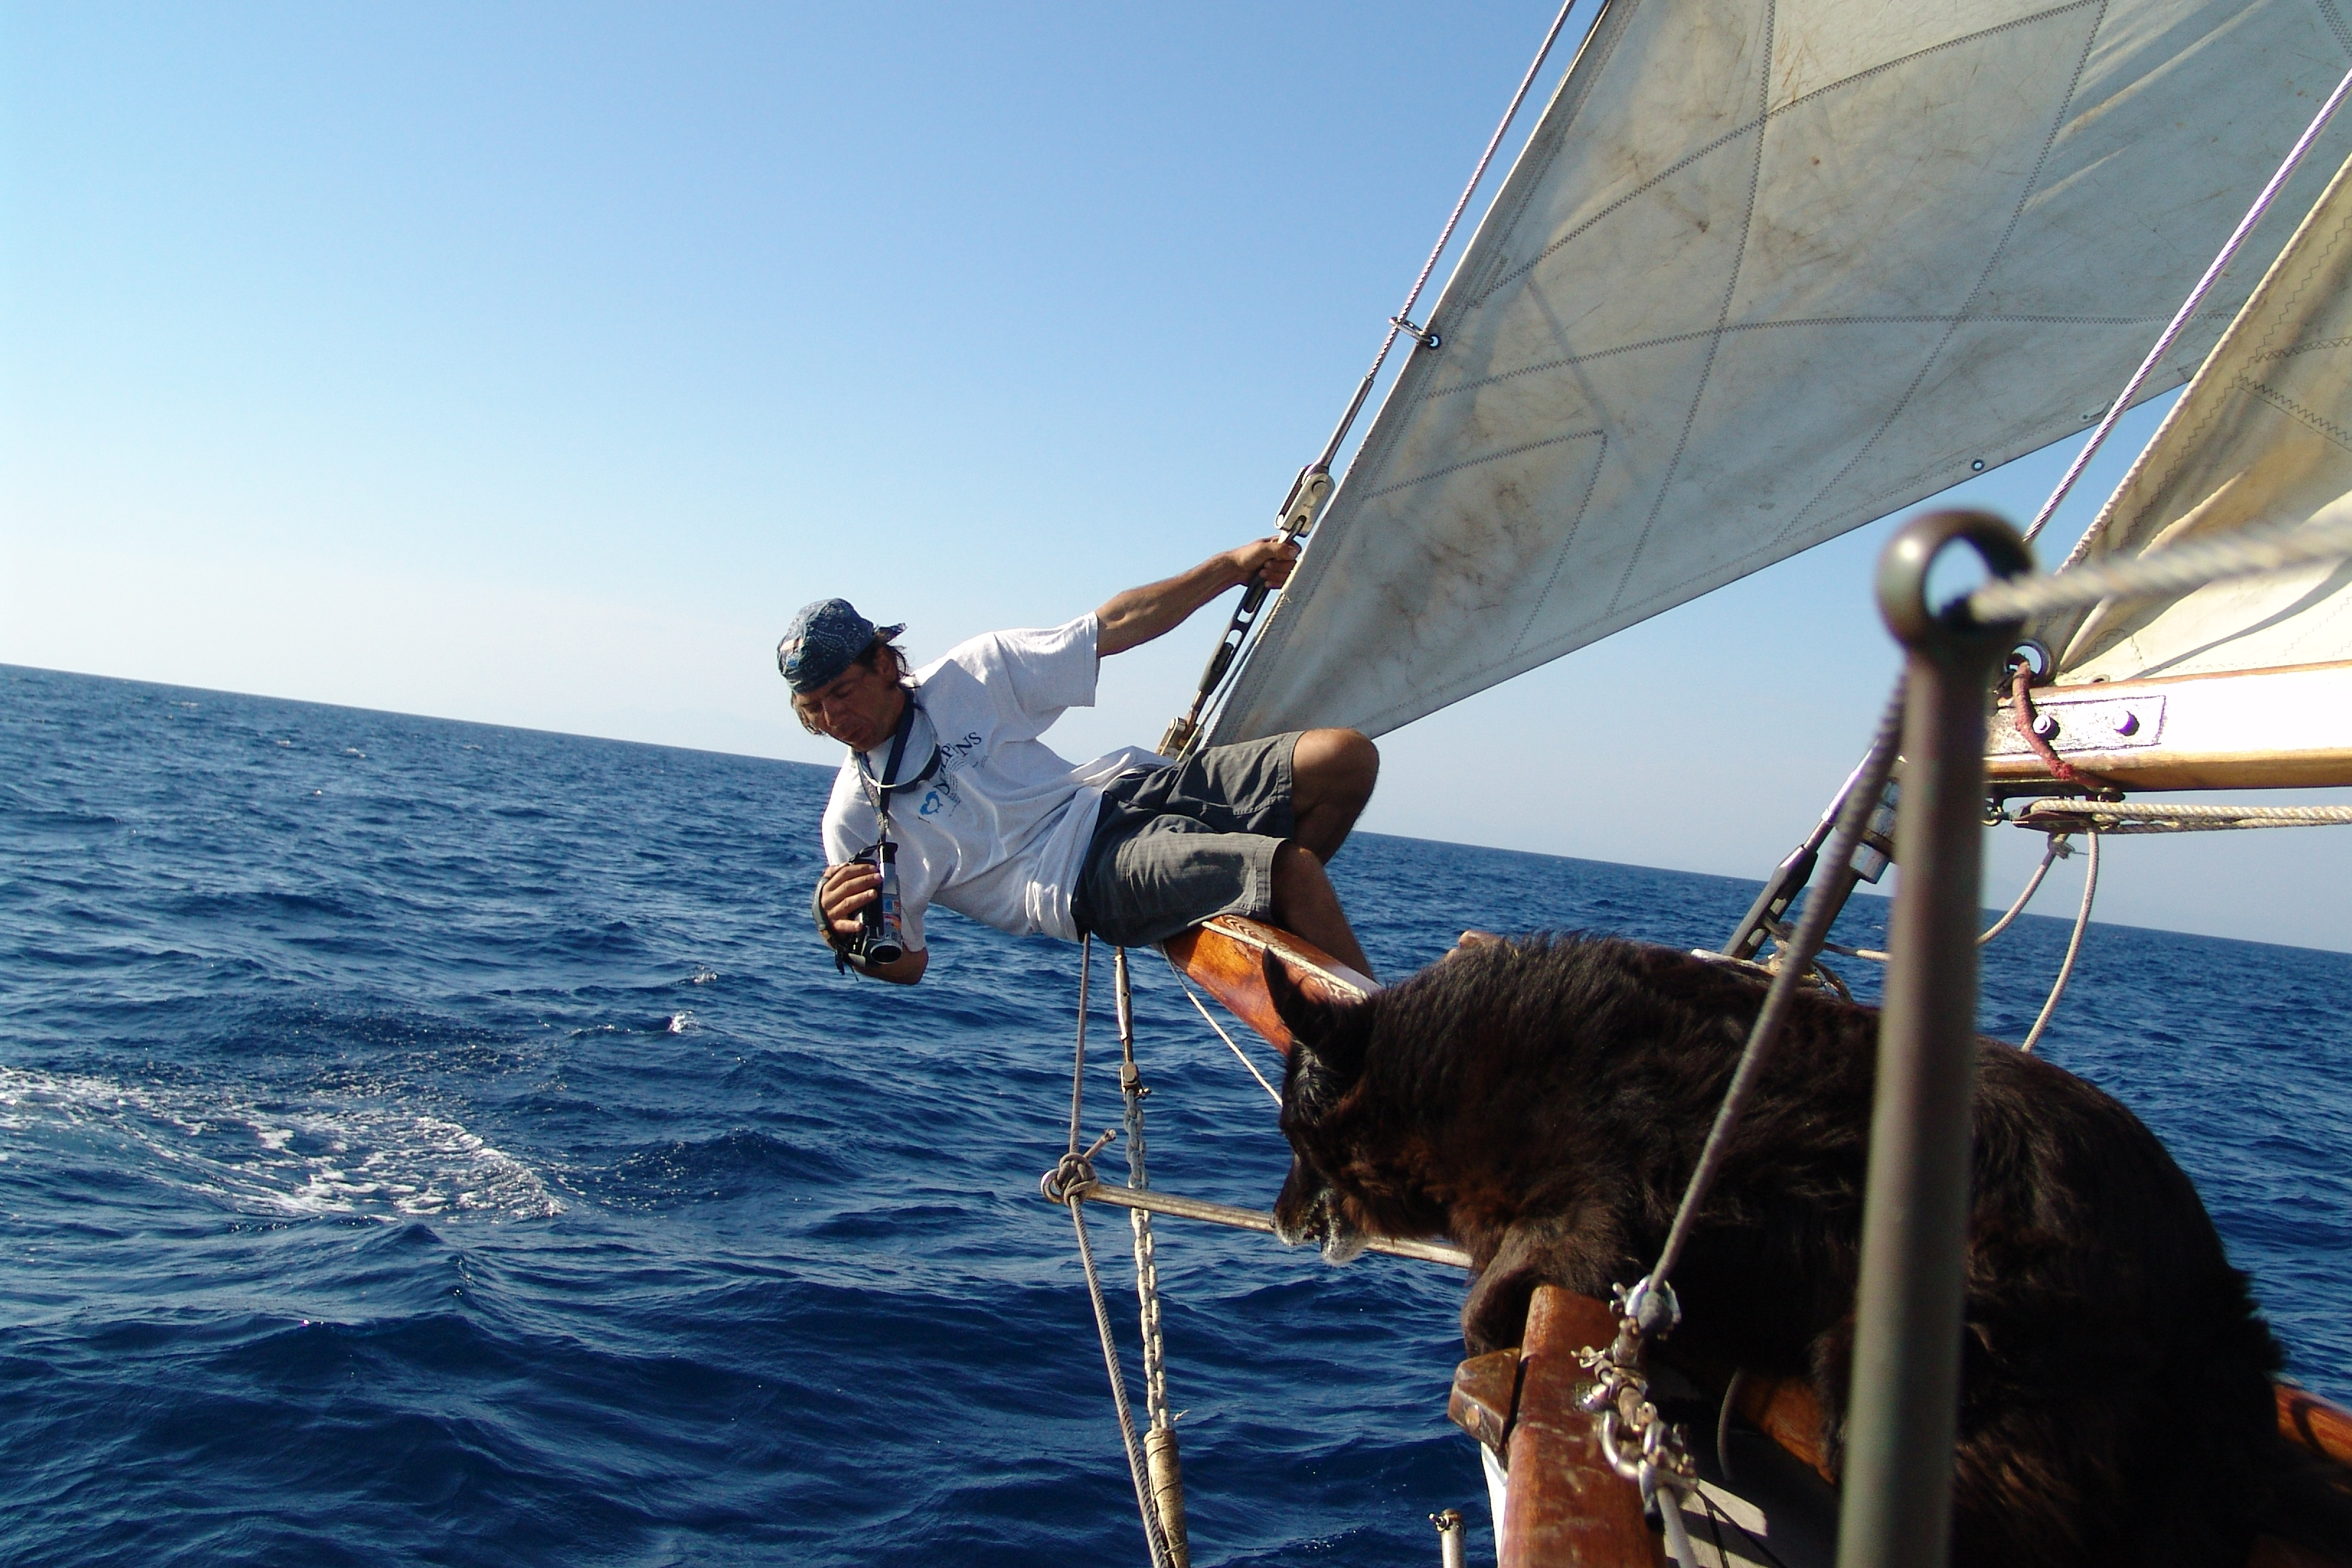 Marine Biology Course in Italy | Global Nomadic